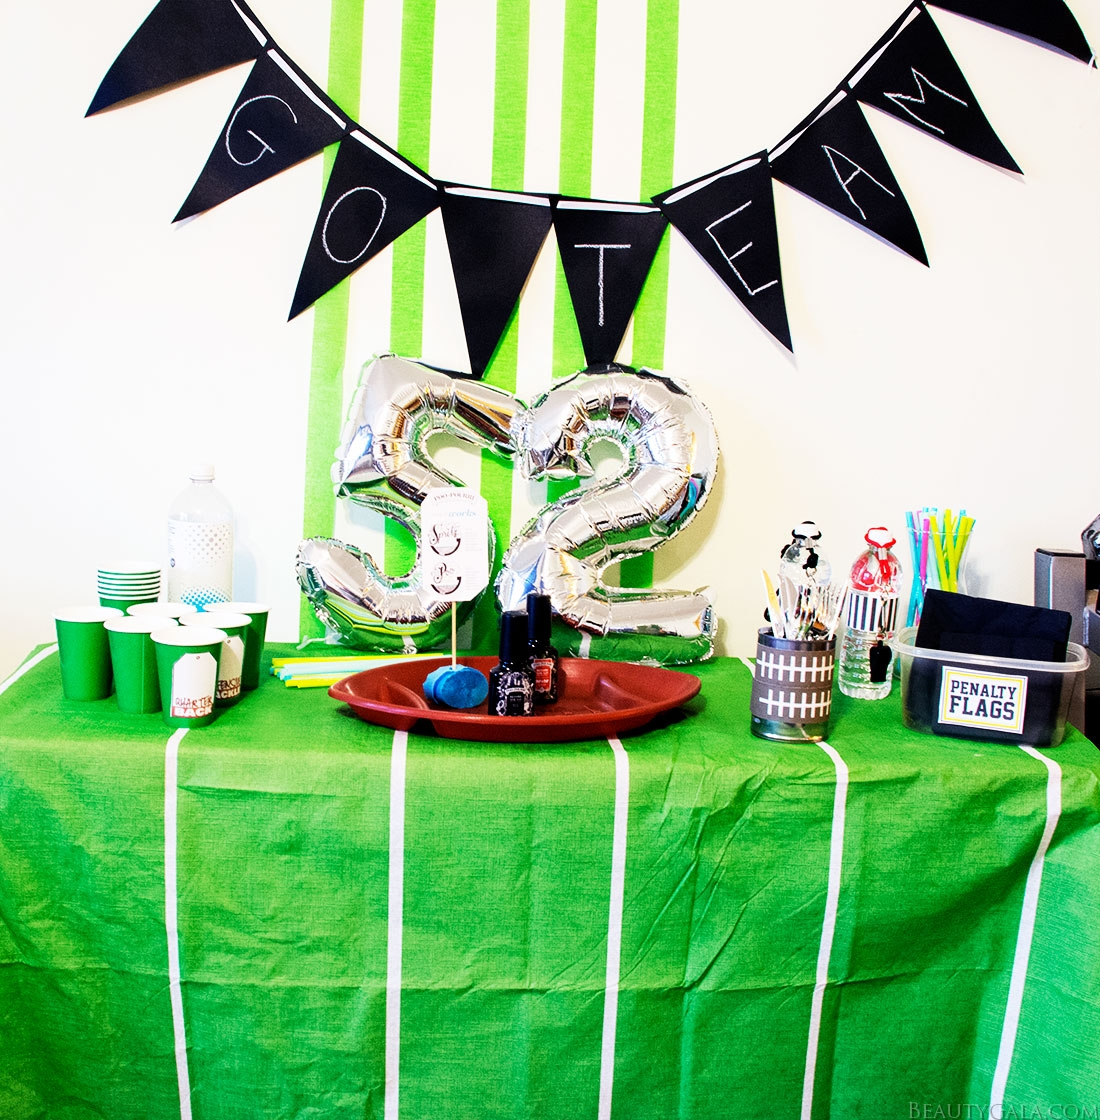 superbowl decor, superbowl party ideas, diy superbowl party, diy superbowl decor, poo~pourri